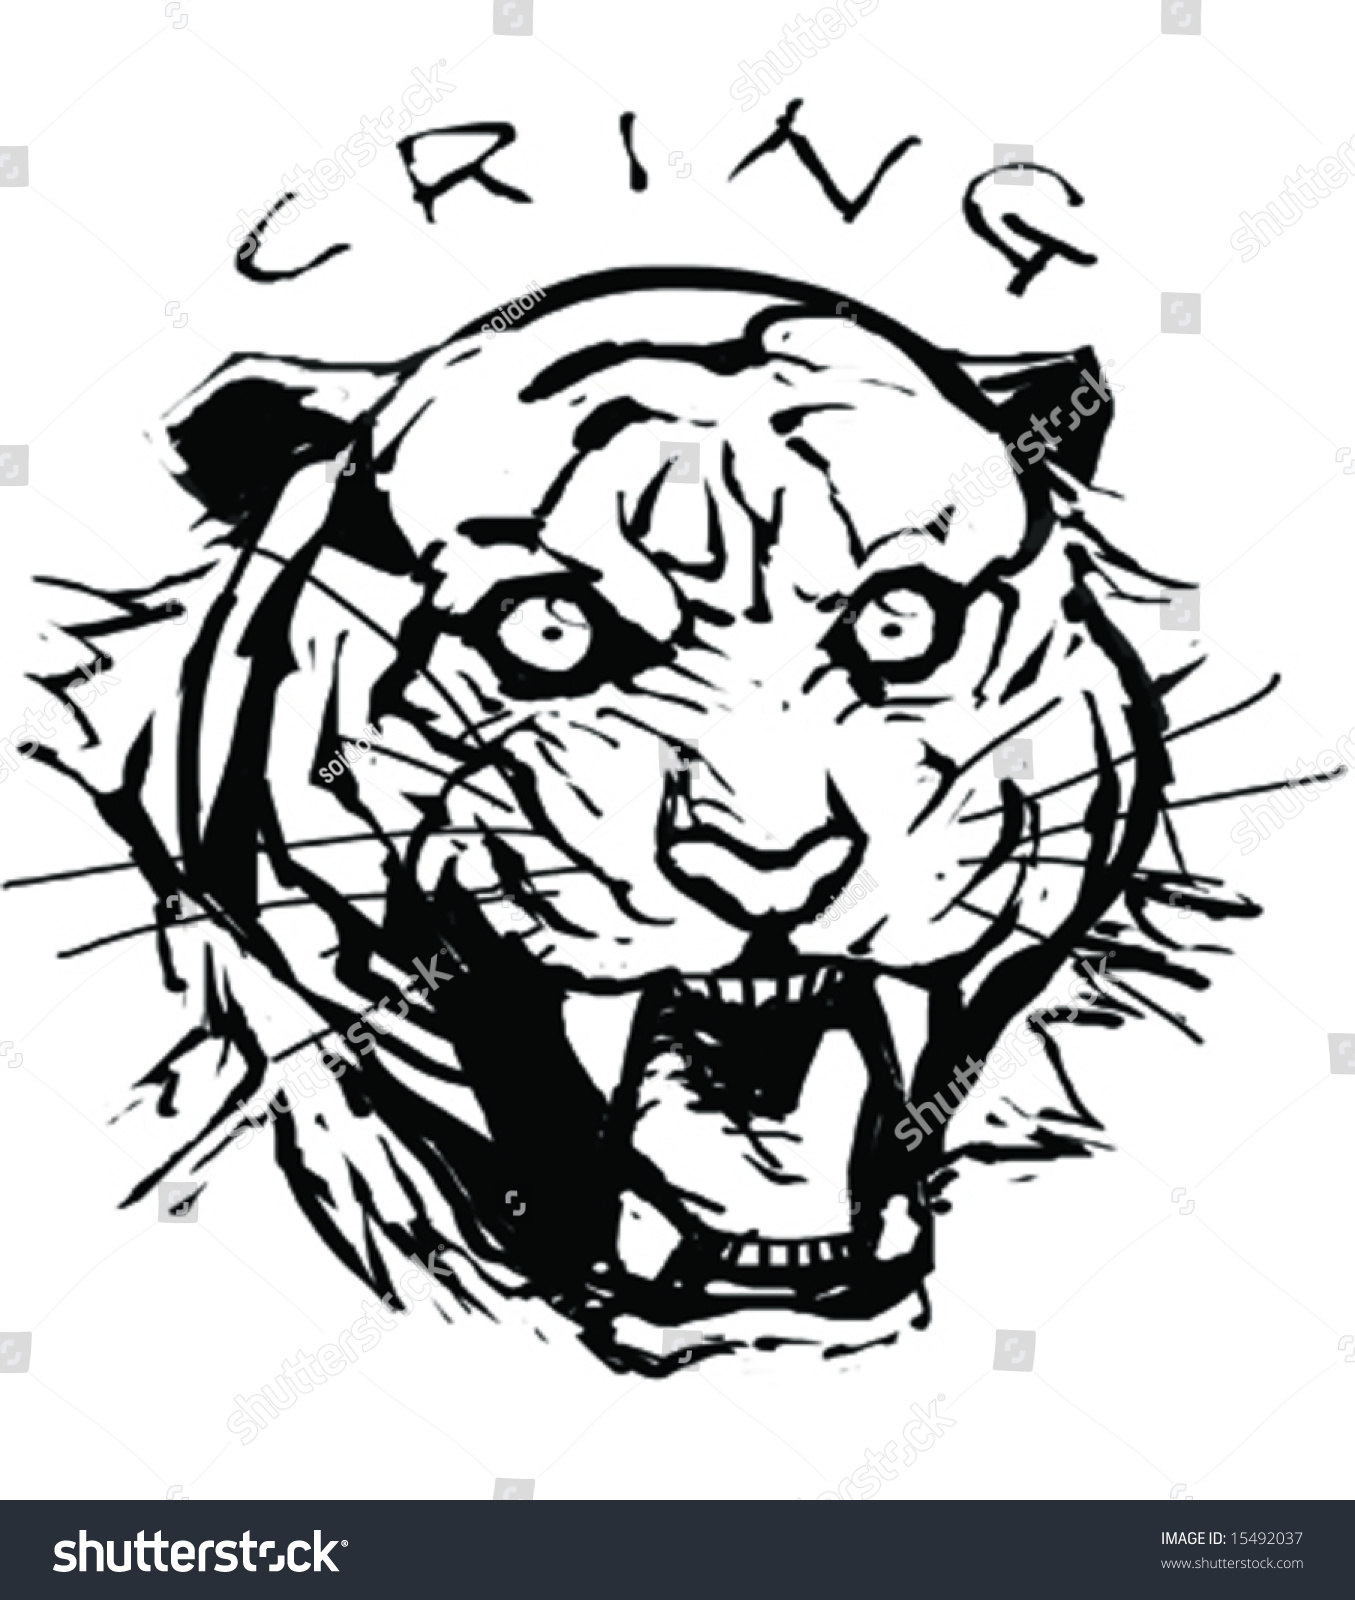 Tiger roar vector - photo#15